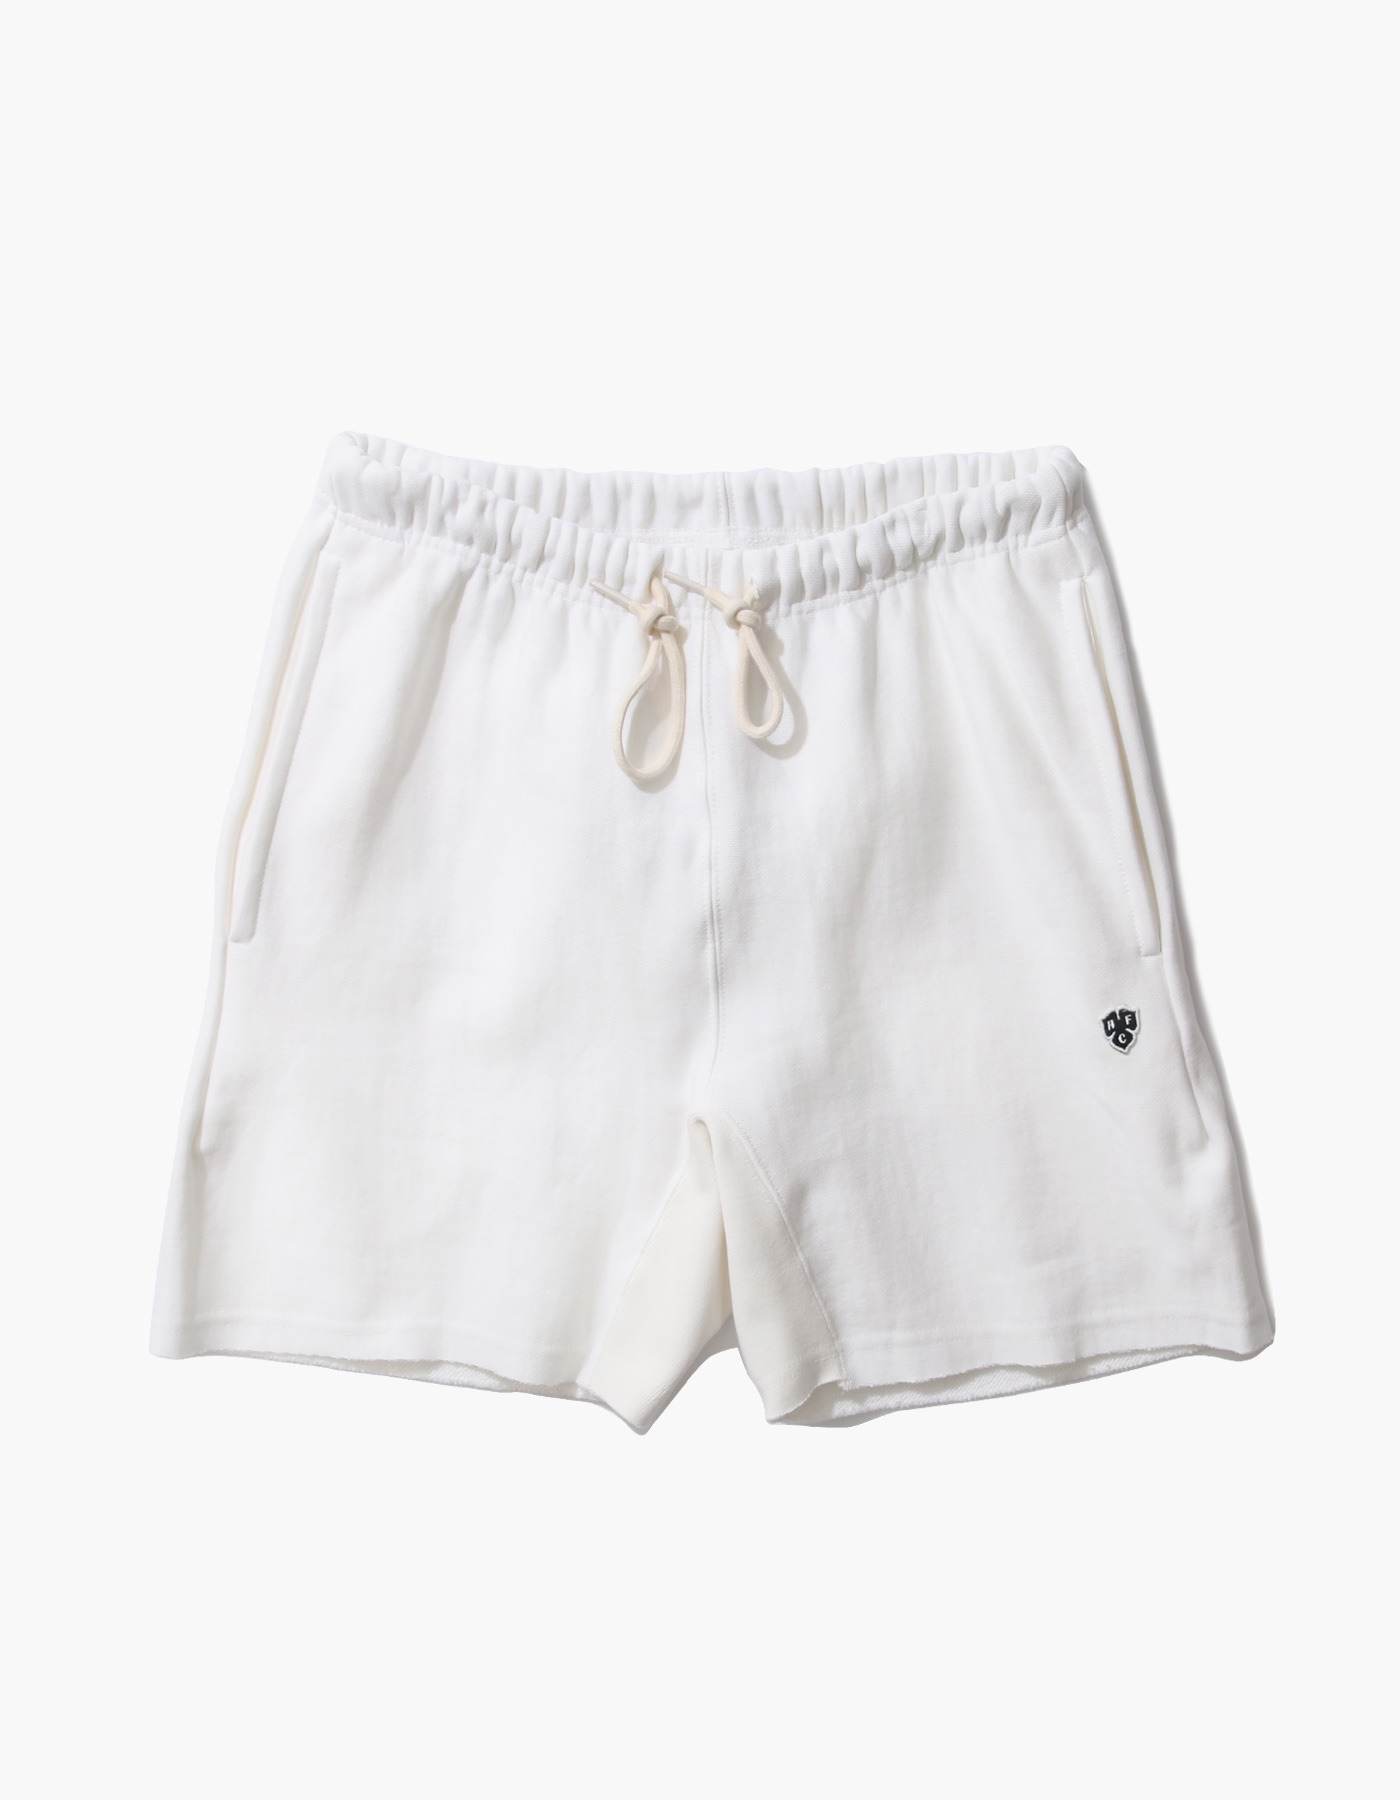 321 GYM SHORTS / WHITE